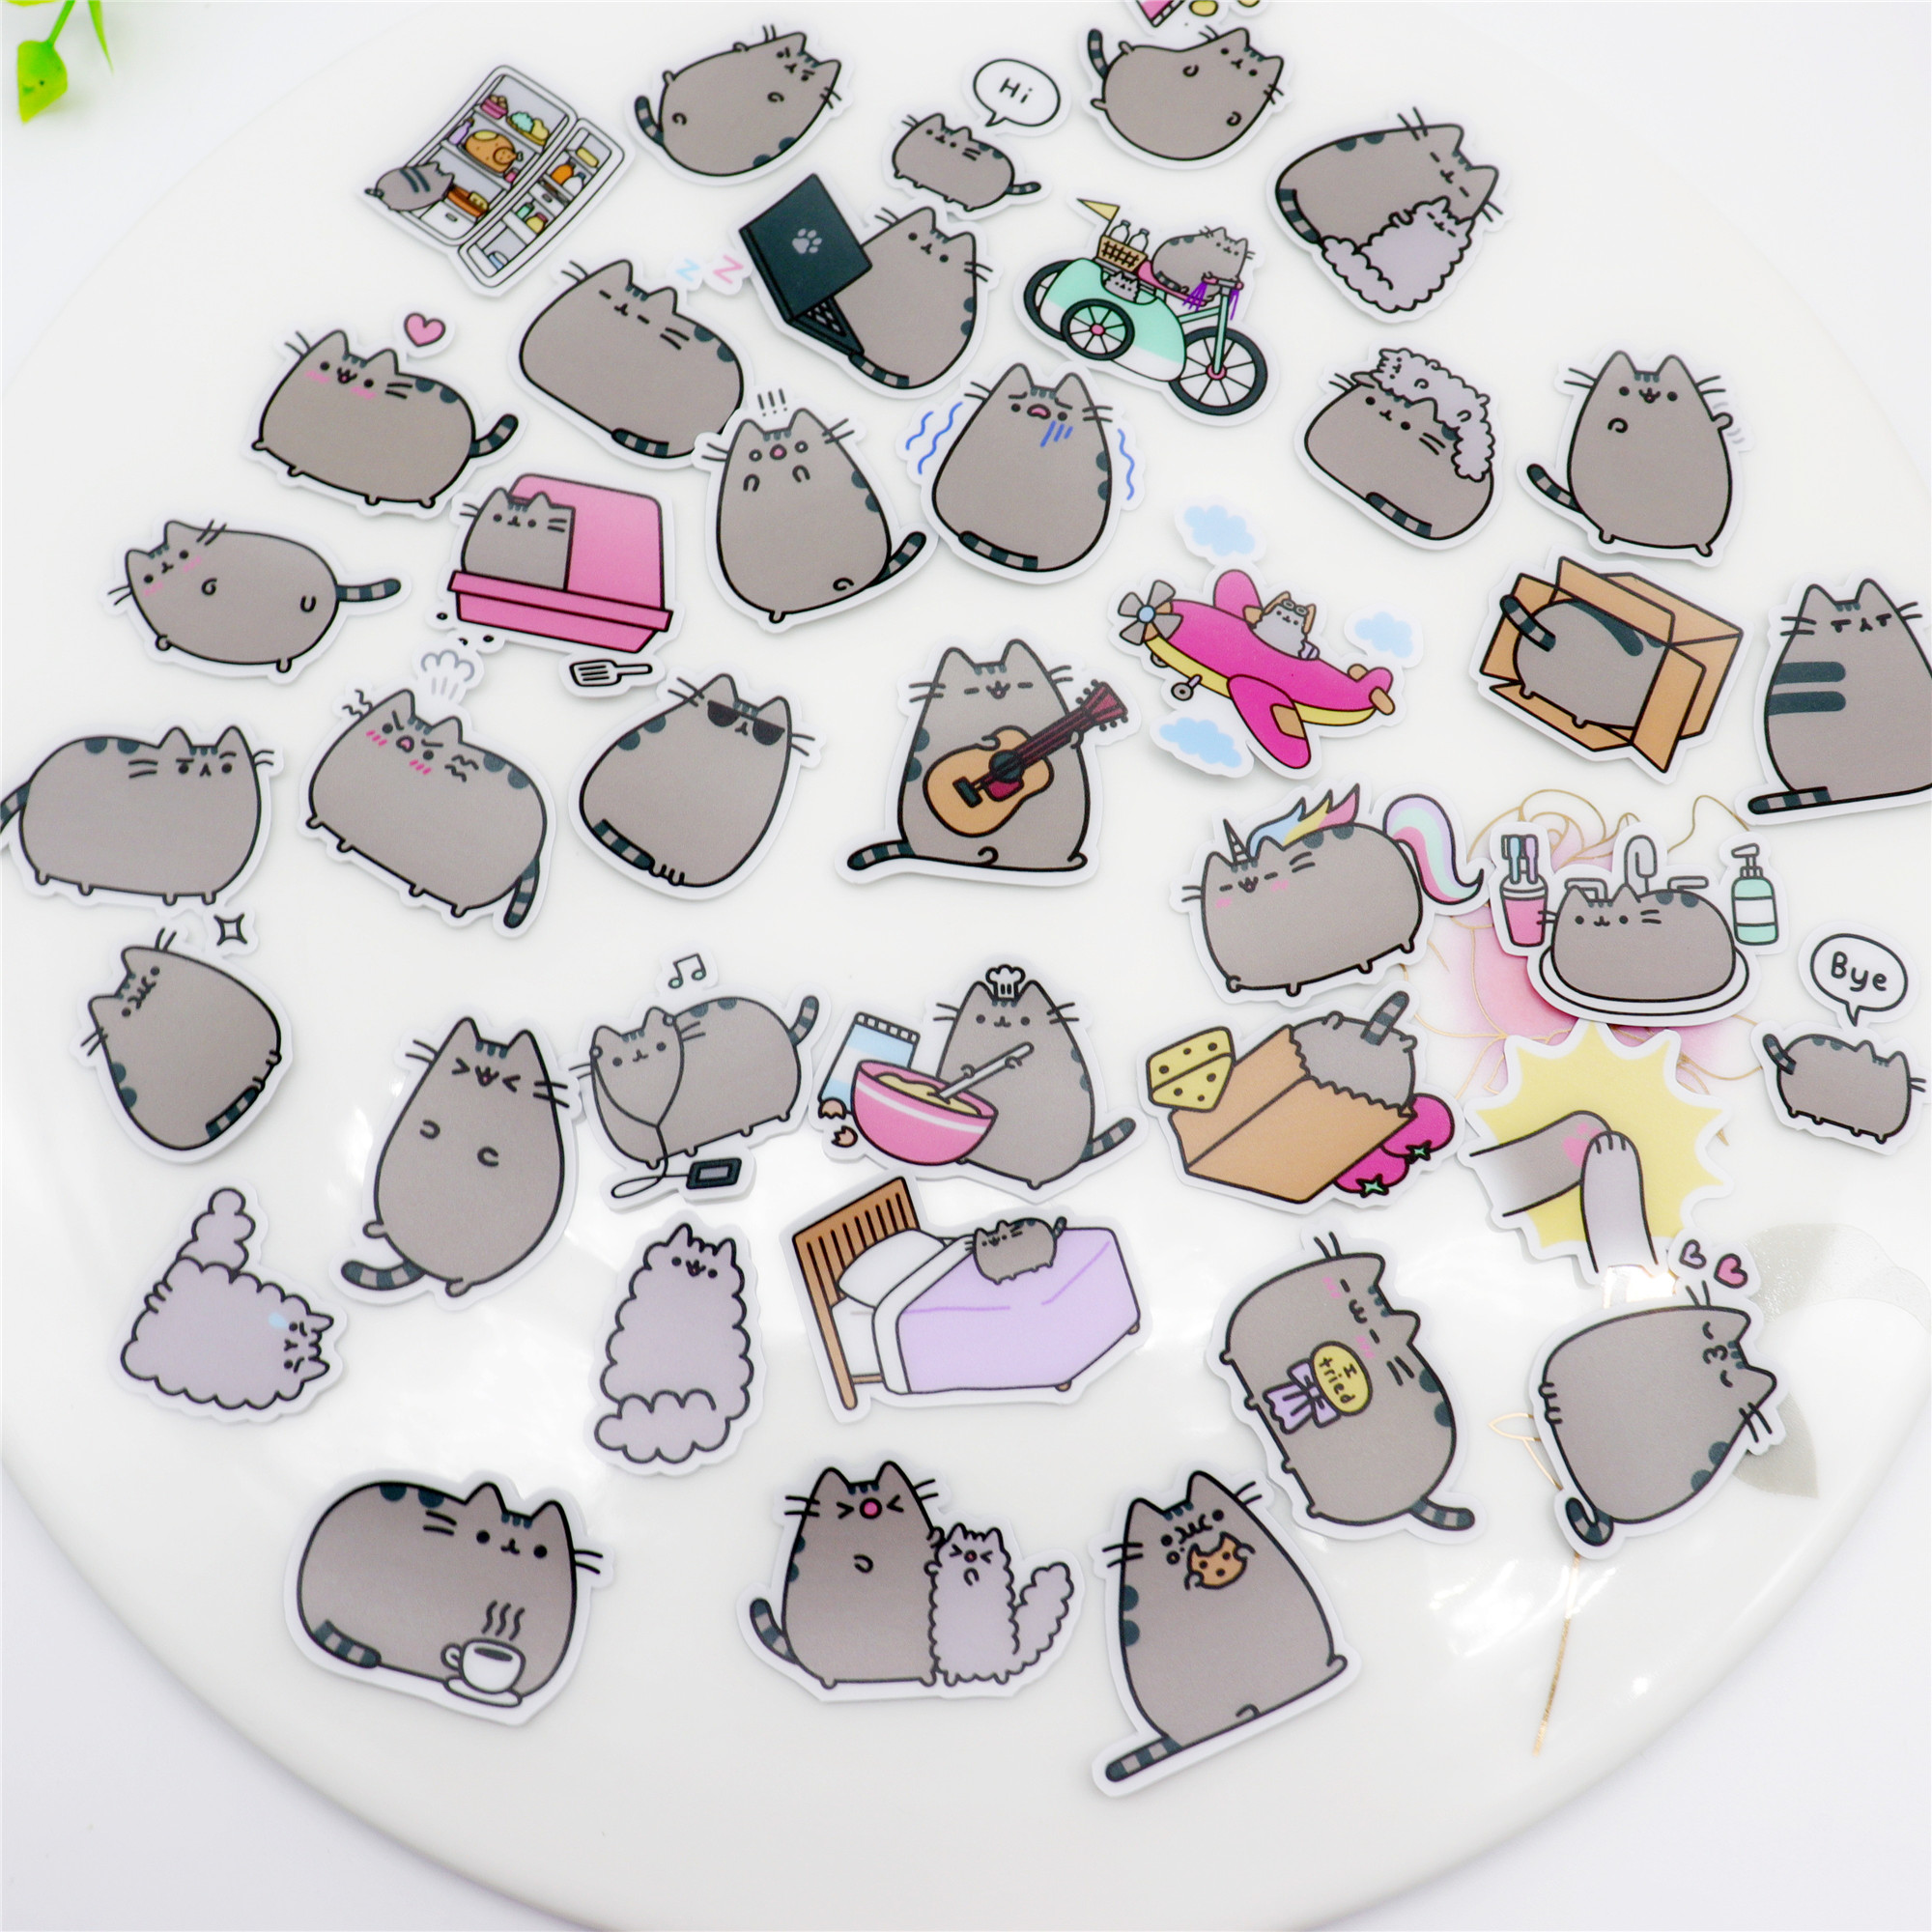 BLINGIRD 39pcs Creative Cute Self-made Fat Cat Scrapbooking